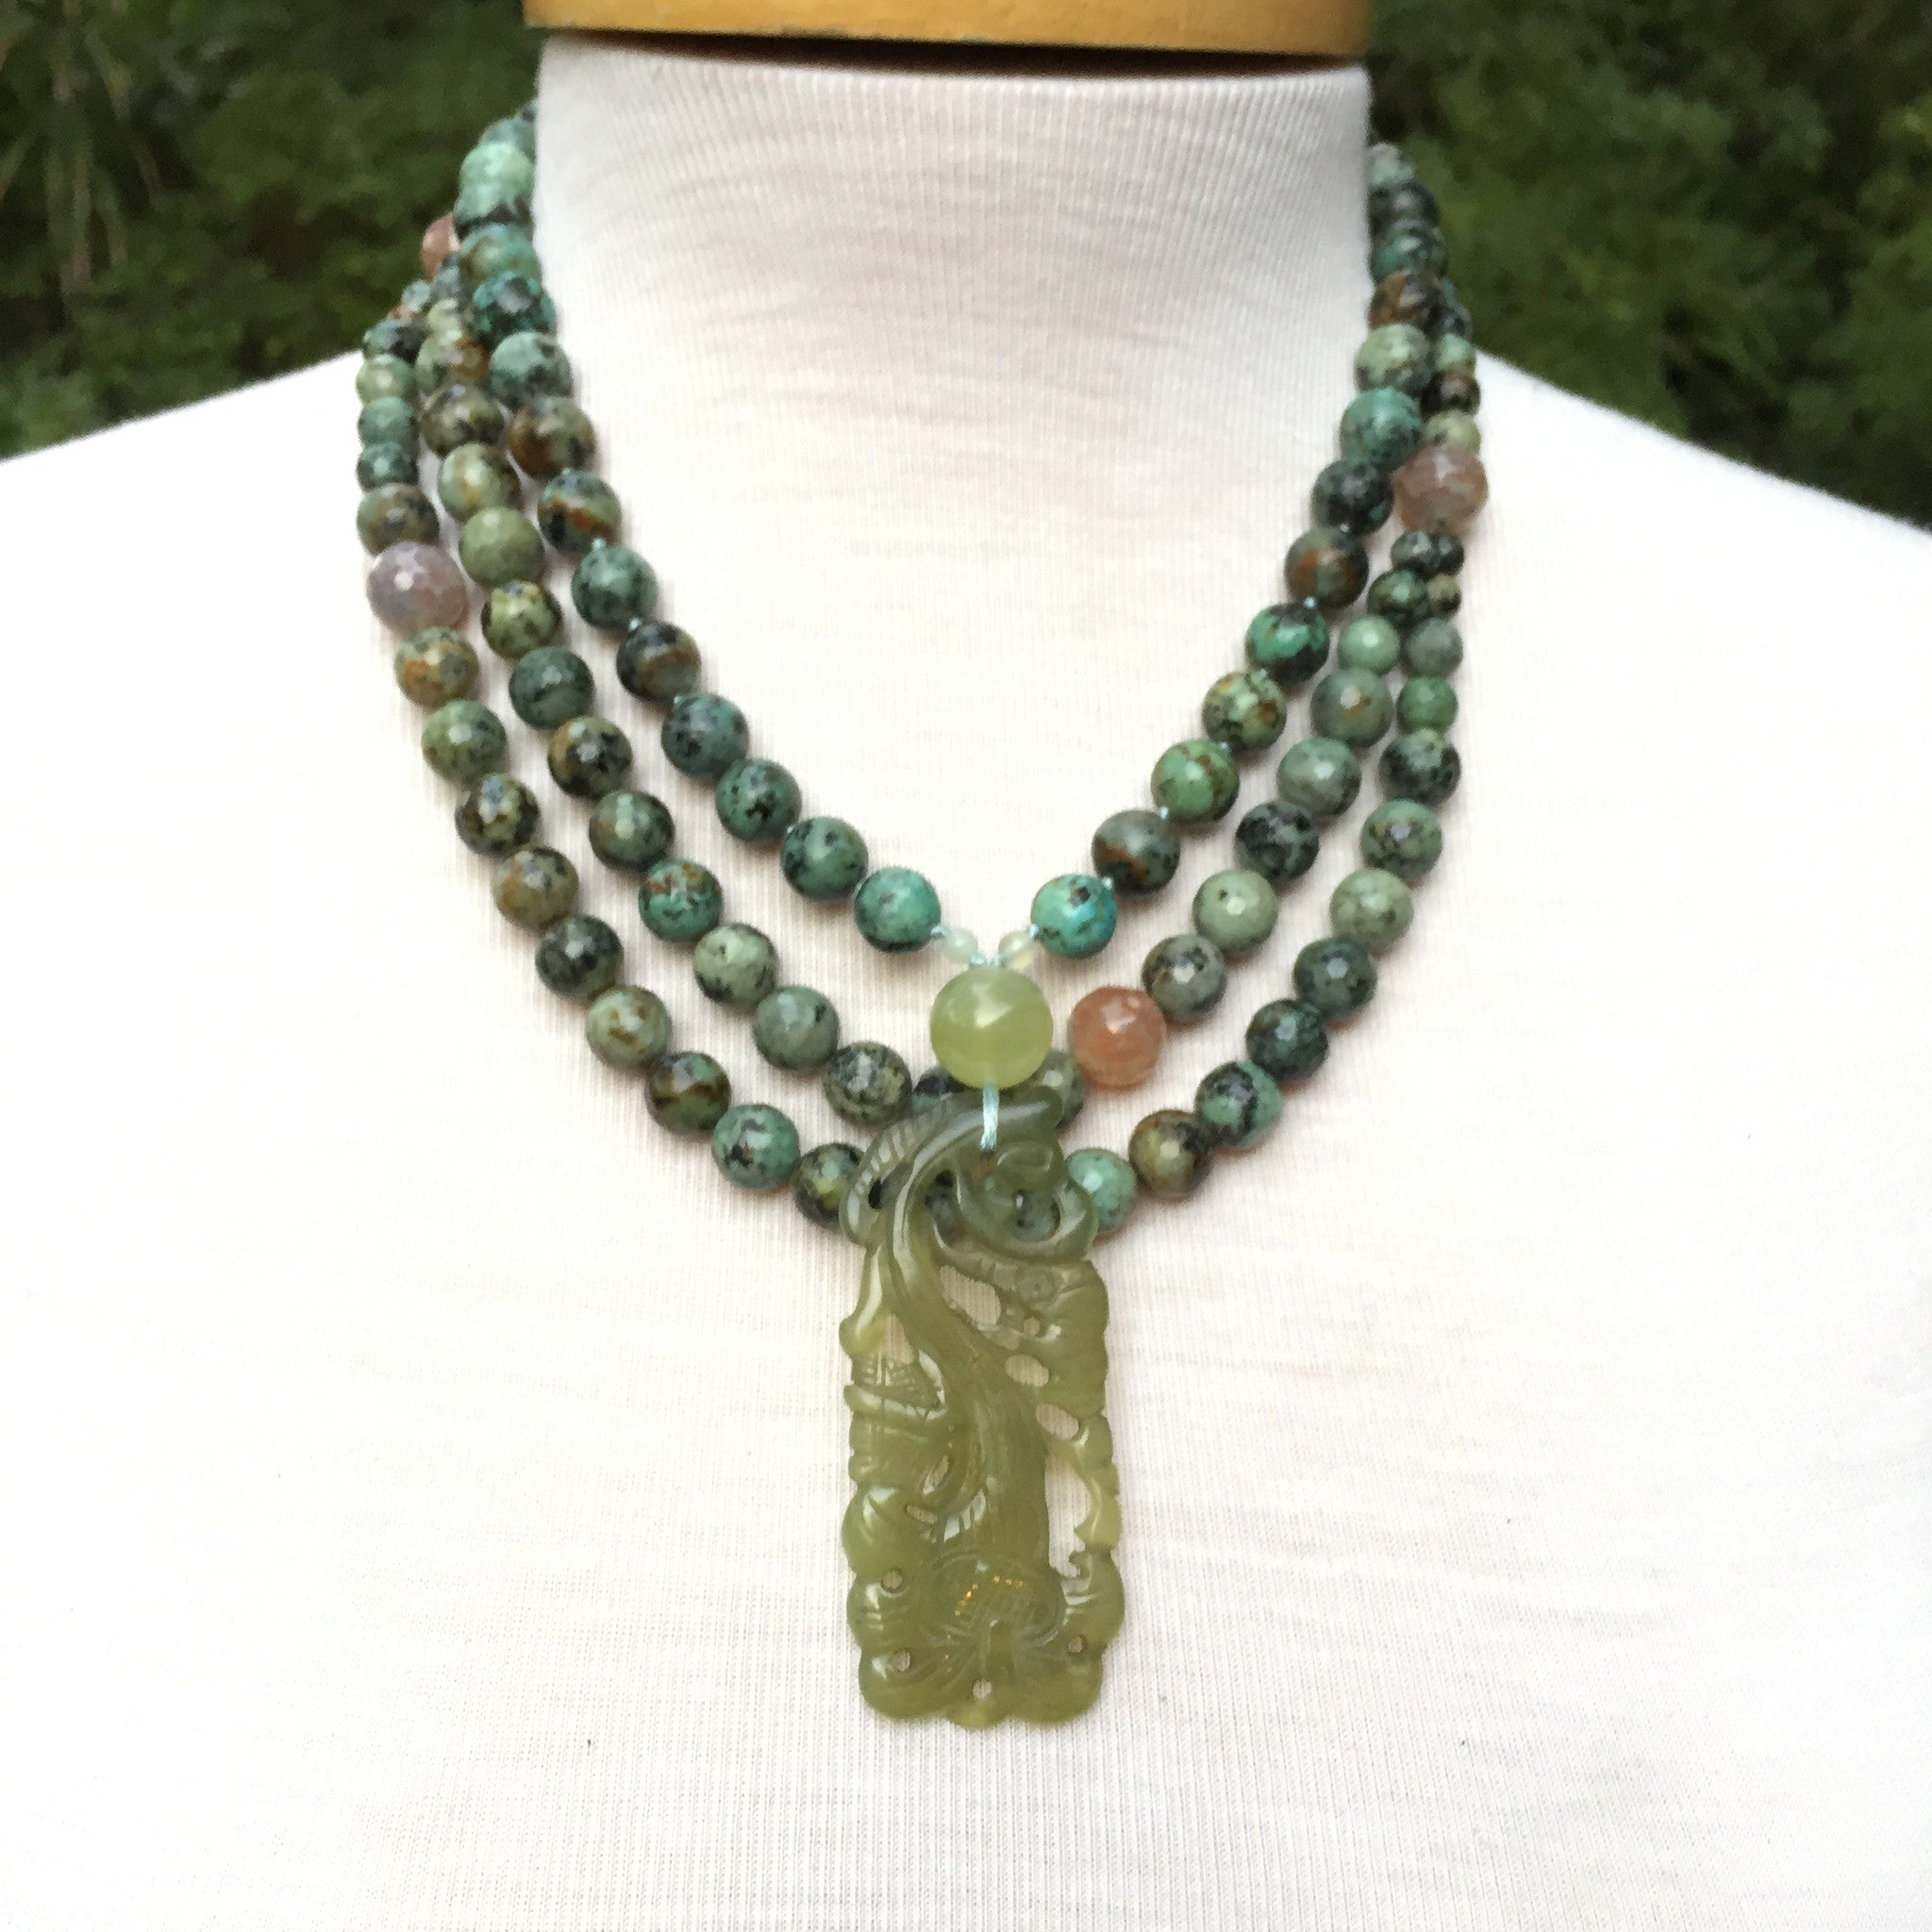 African Turquoise and Agate Necklace - Sunya Currie 26a2f0a847bb